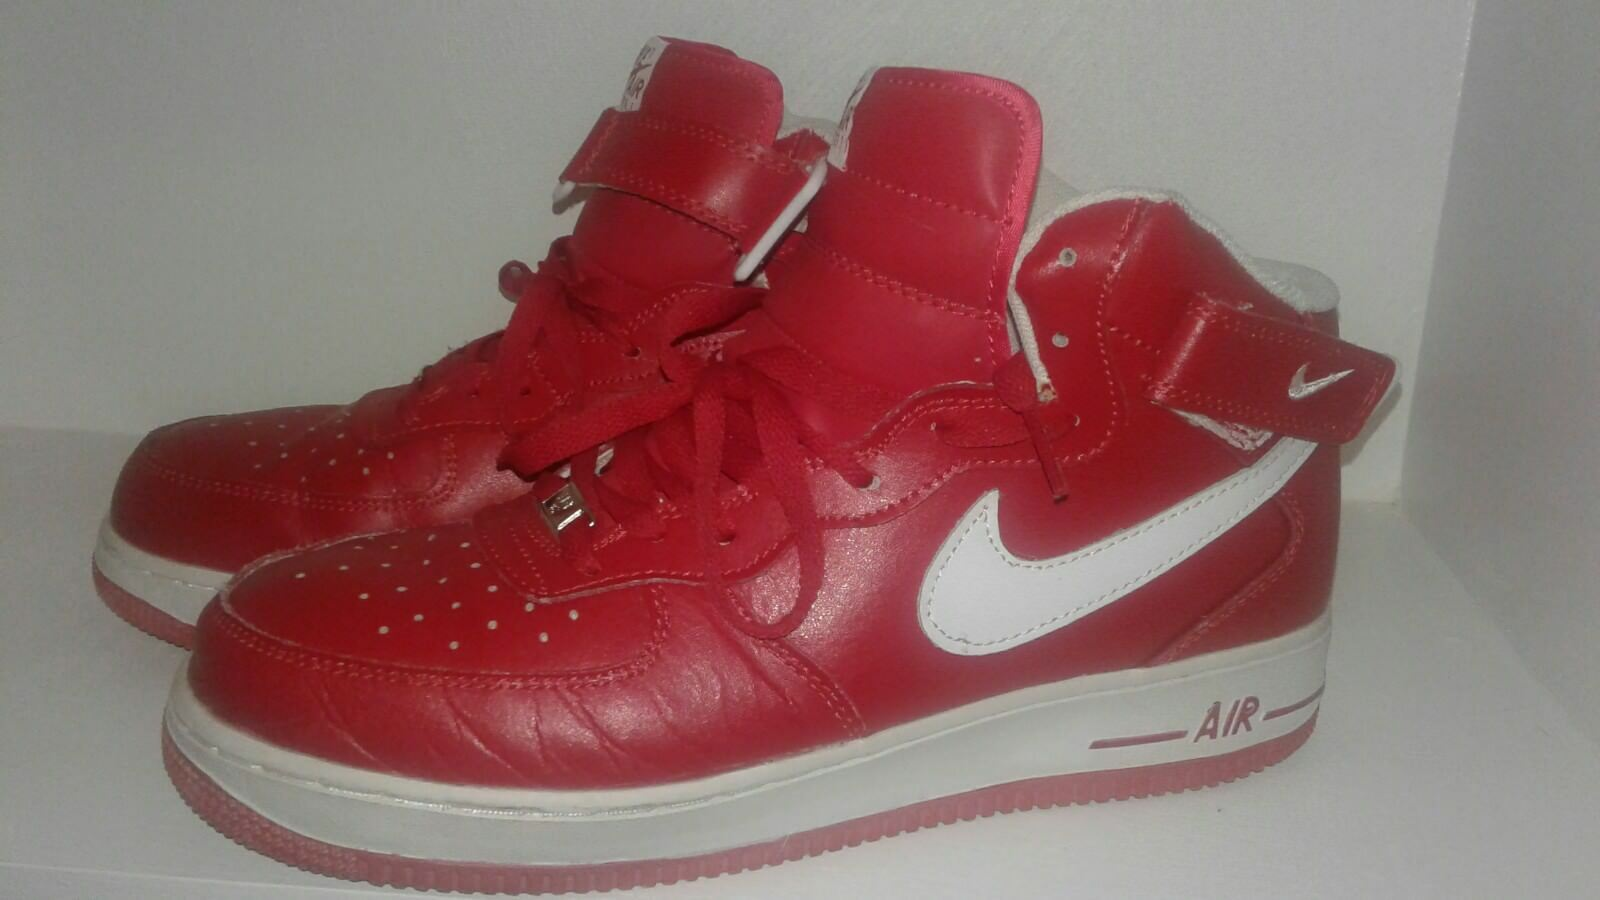 Nike Air Force One all Red / White Mid sz 12